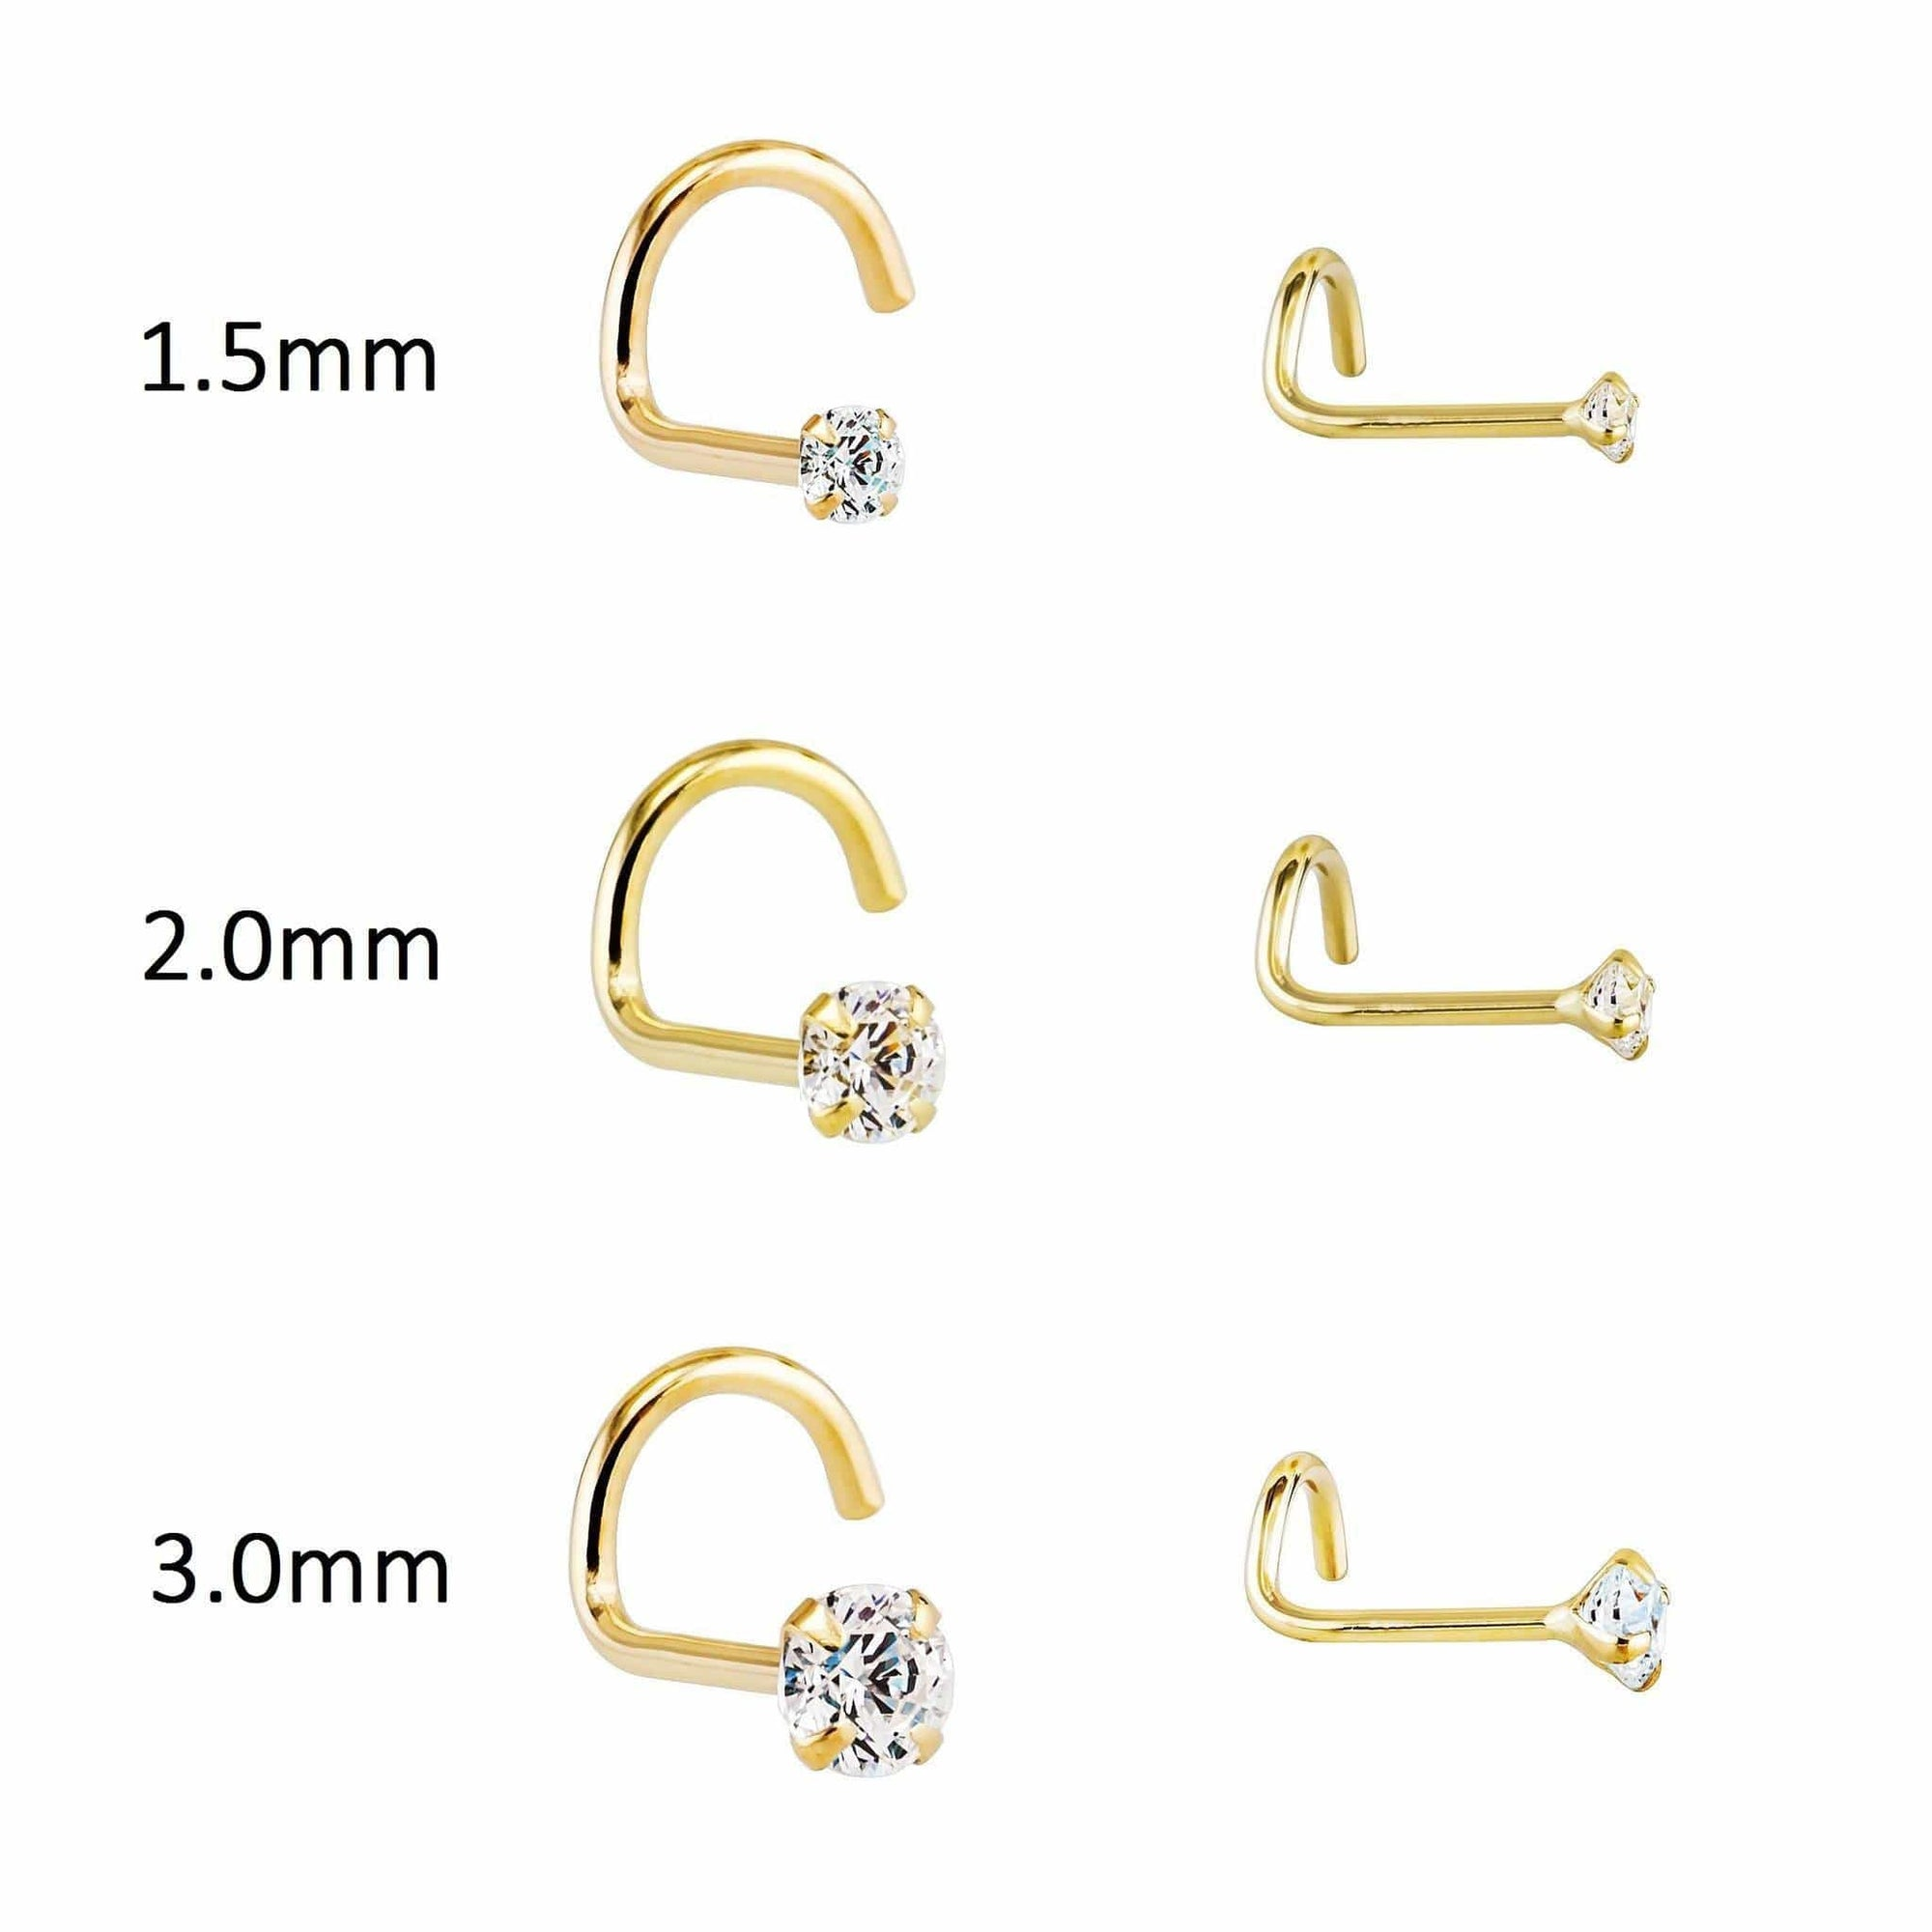 14k Gold 20g Genuine Diamond Nose Stud